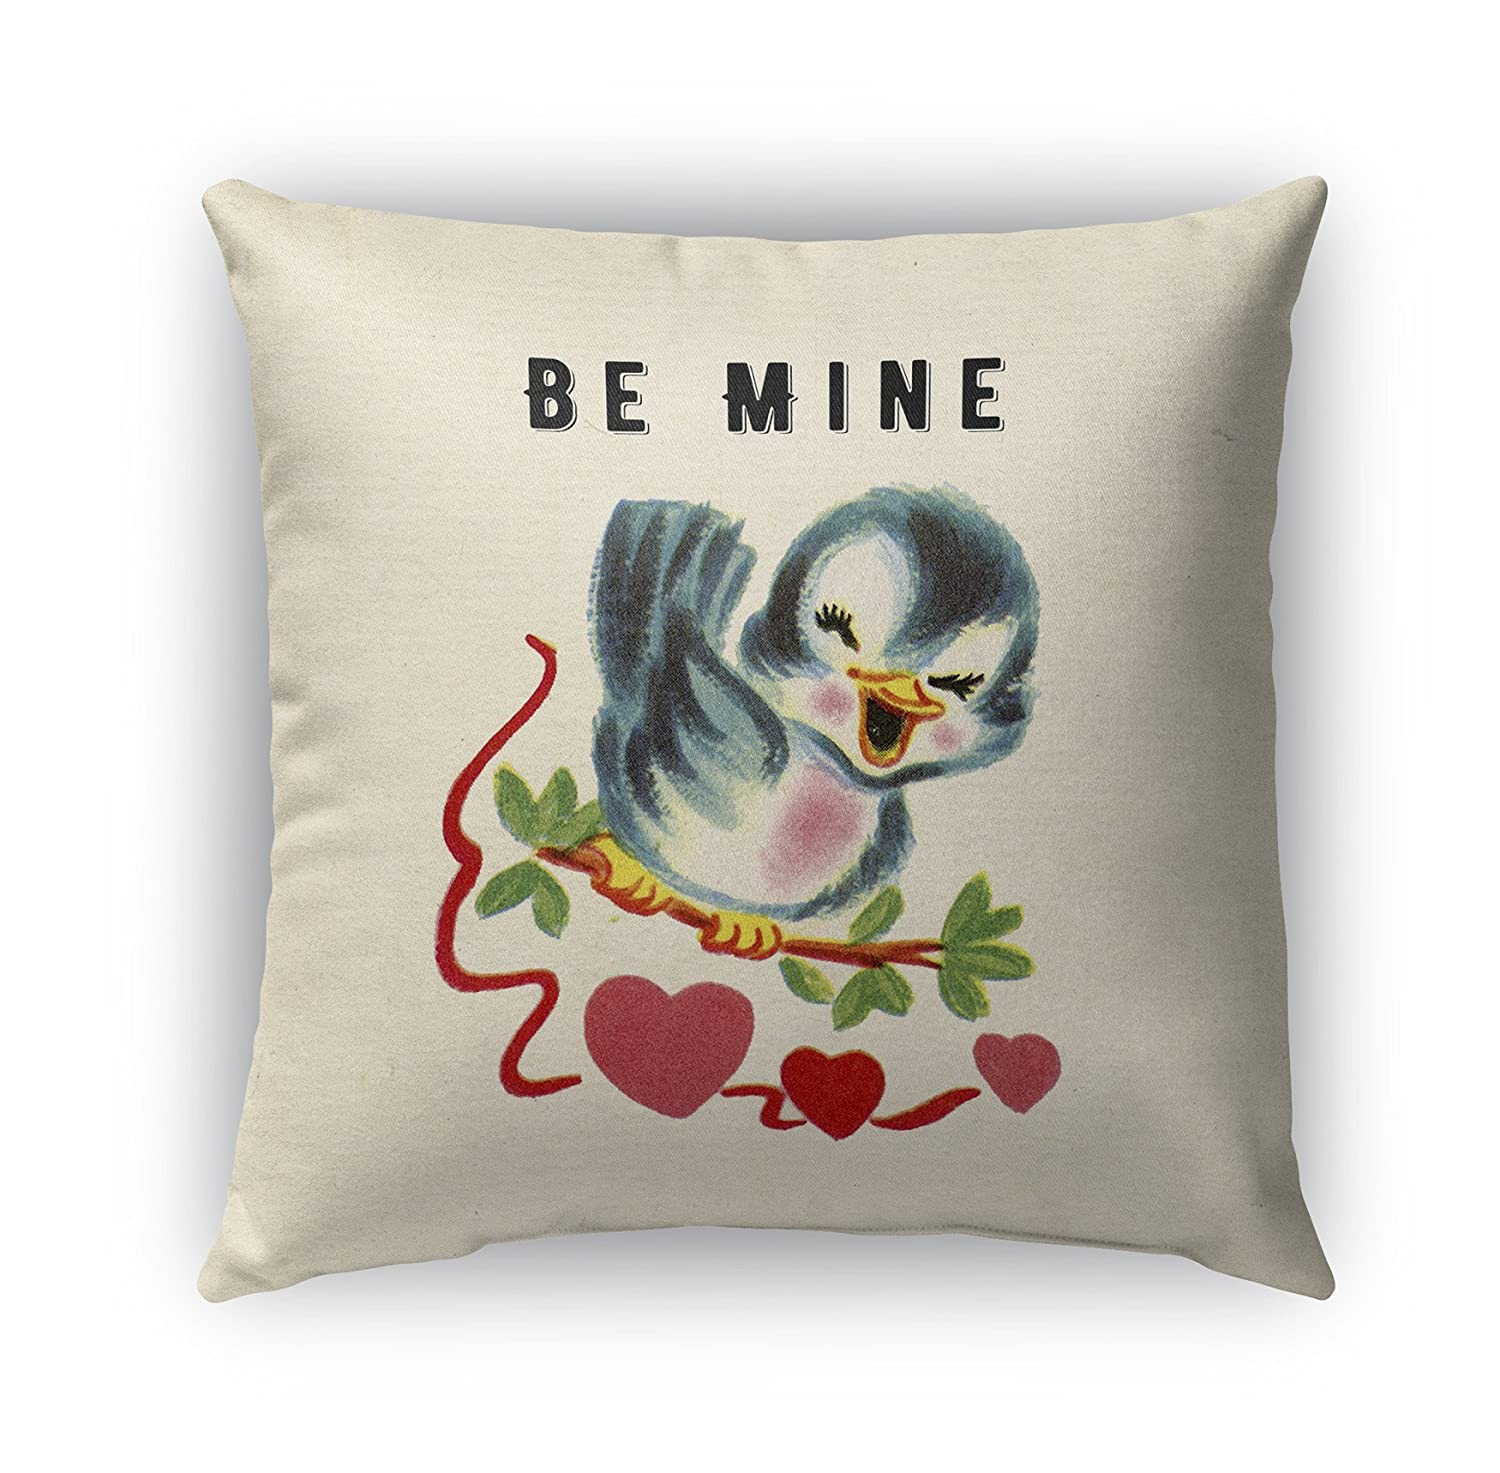 Red//Green//Blue KAVKA Designs Be Mine Indoor-Outdoor Pillow, TELAVC8148OP16 - TRADITIONS Collection Size: 16X16X6 -